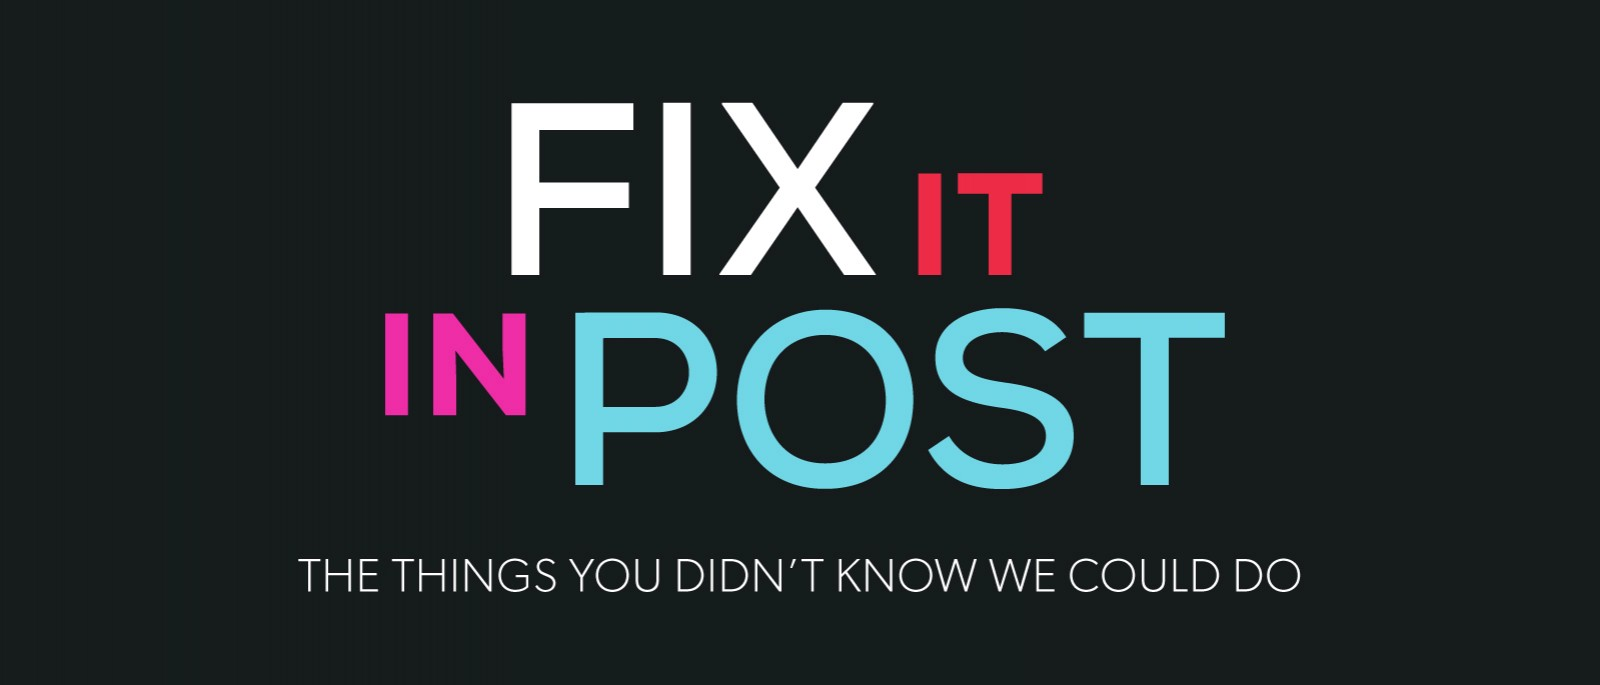 'Fix it in Post' - The Things You Didn't Know We Could Do!